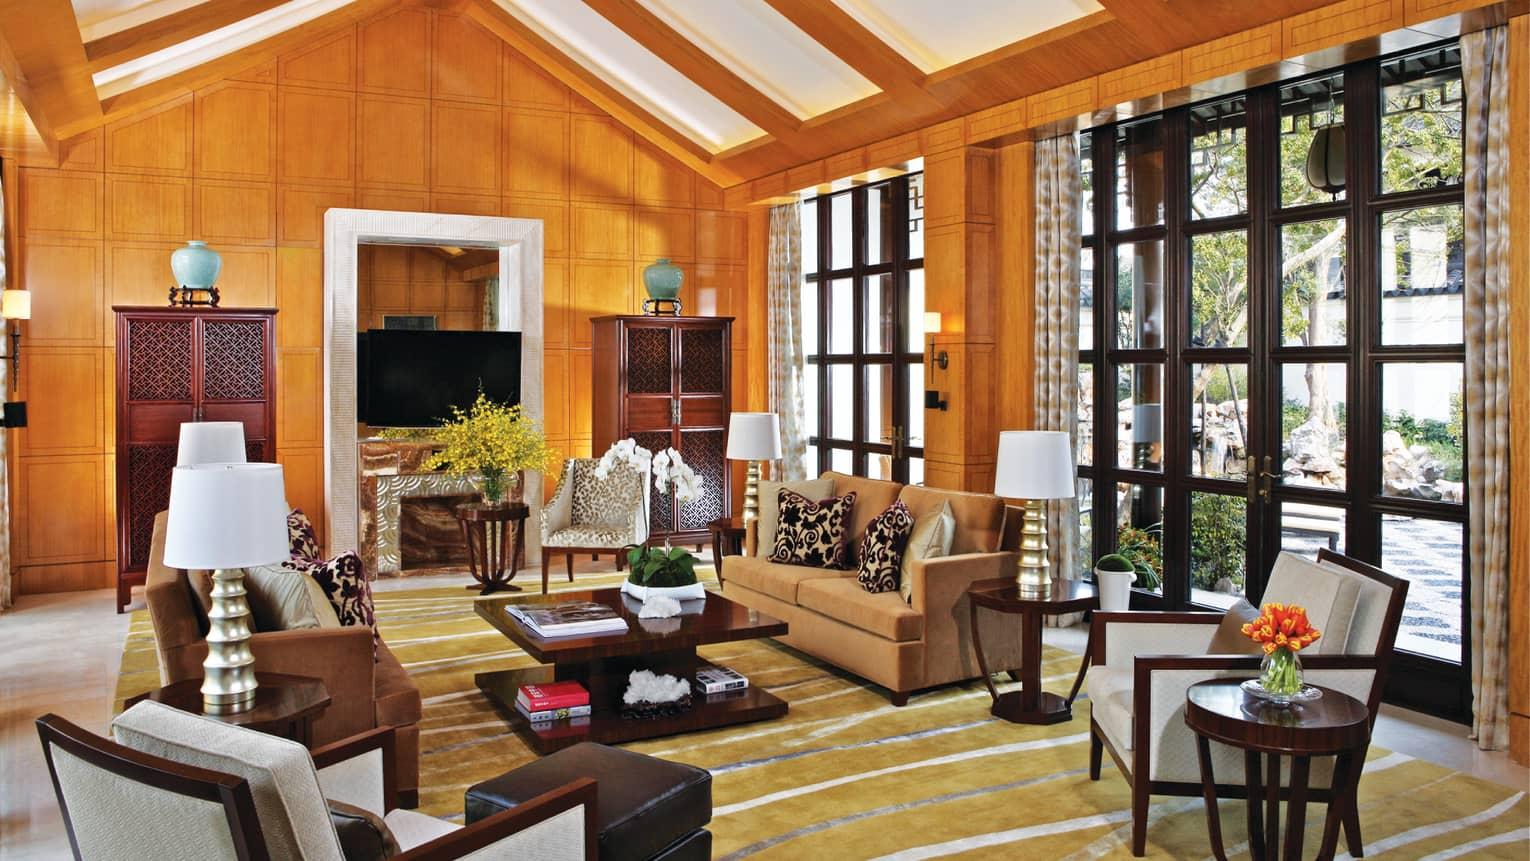 Jiang Nan-style Ambassador Villa living room under soaring ceilings, large windows